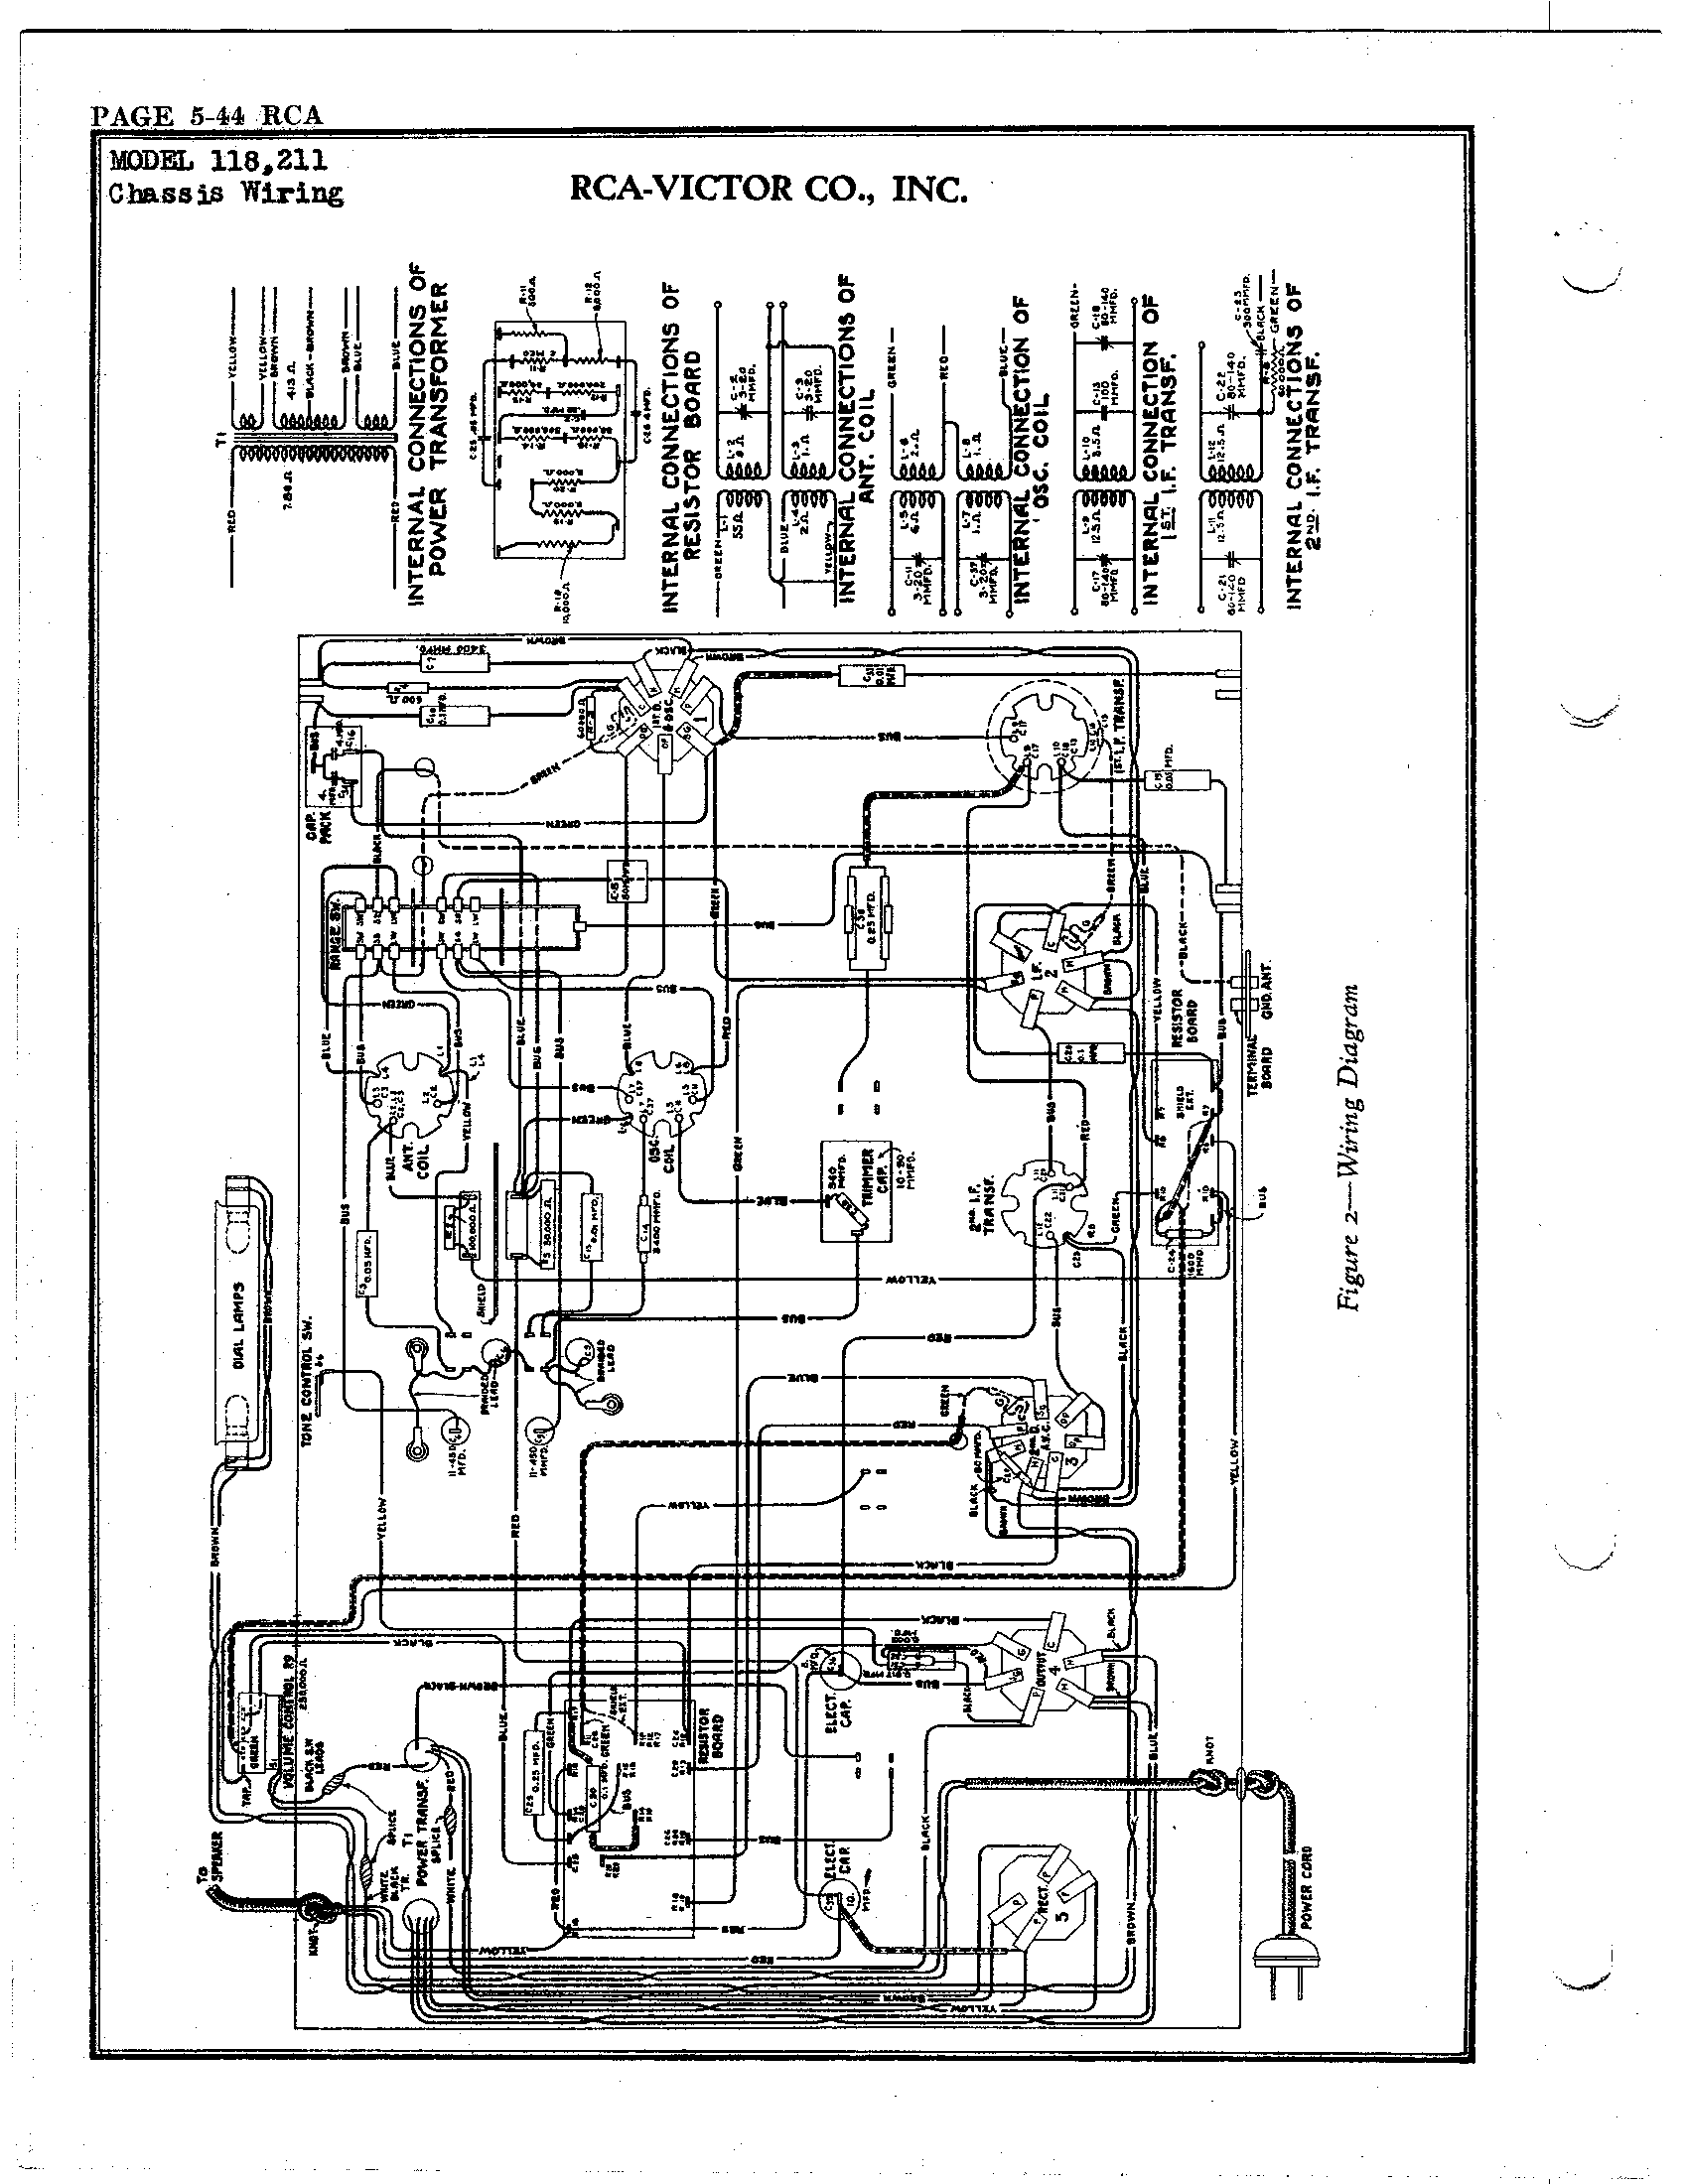 rca tv wiring diagram r.c.a. victor co., inc. 221 | antique electronic supply